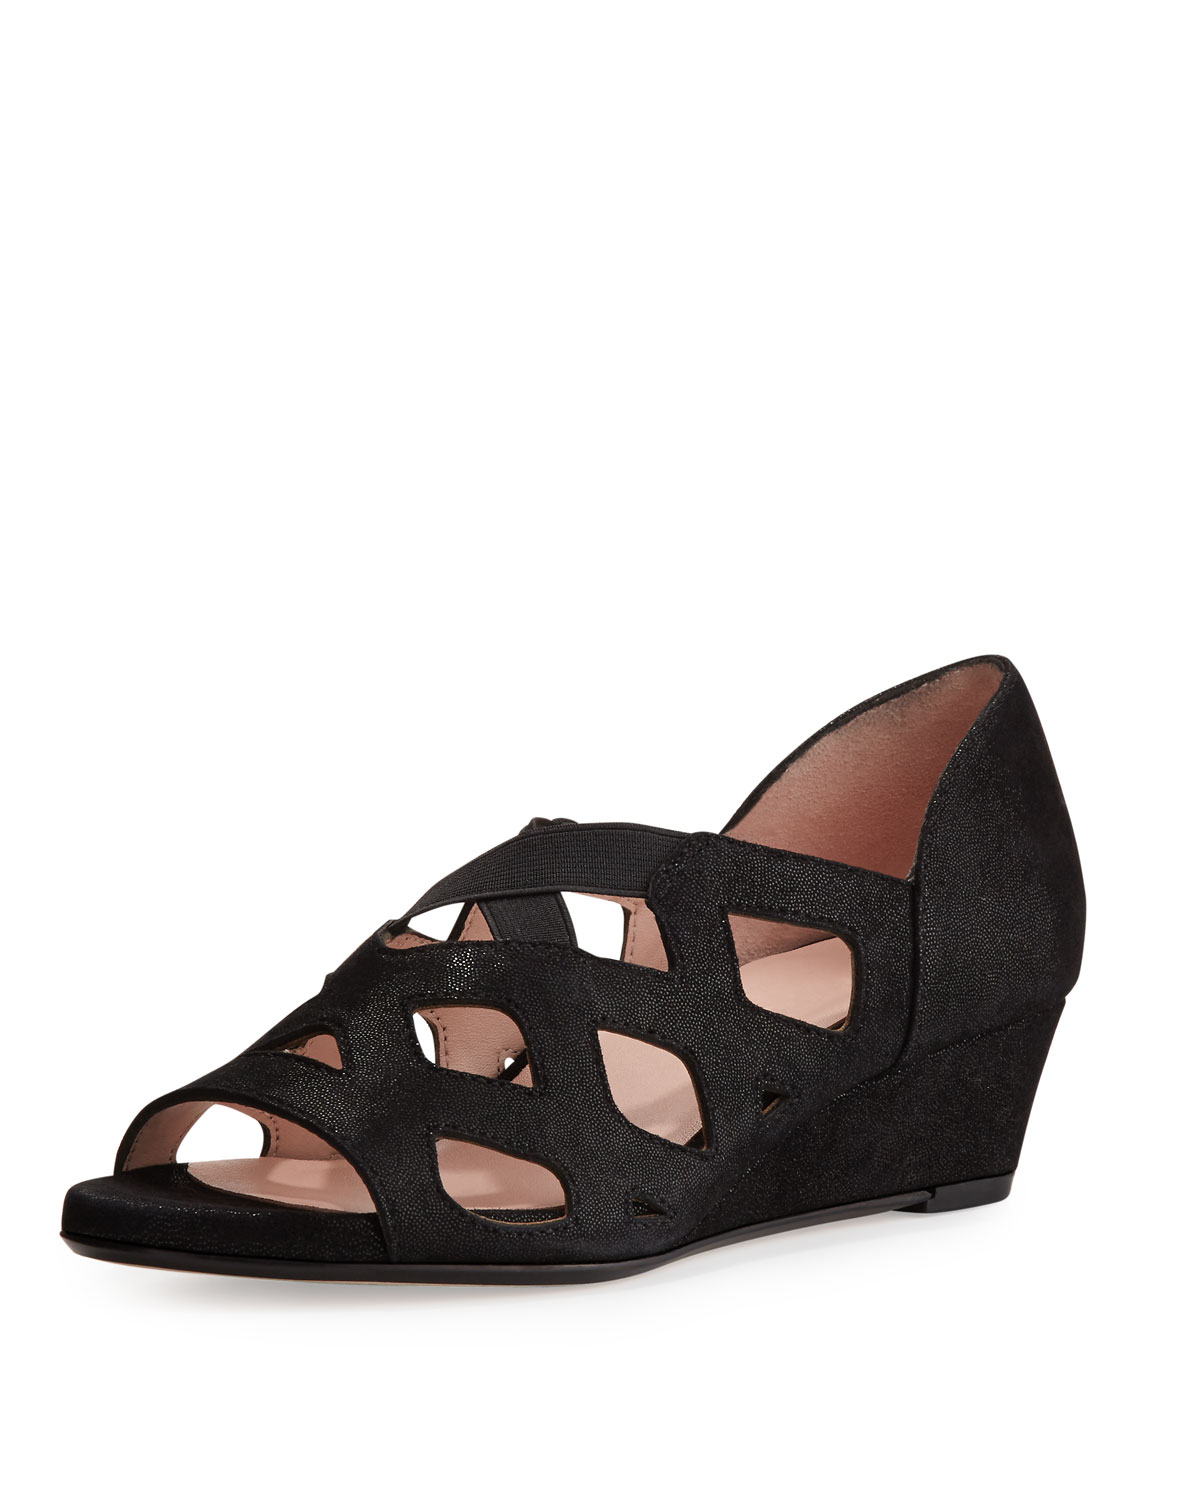 677e80b9390 Taryn Rose Soukey Strappy Suede Low-Wedge Sandals